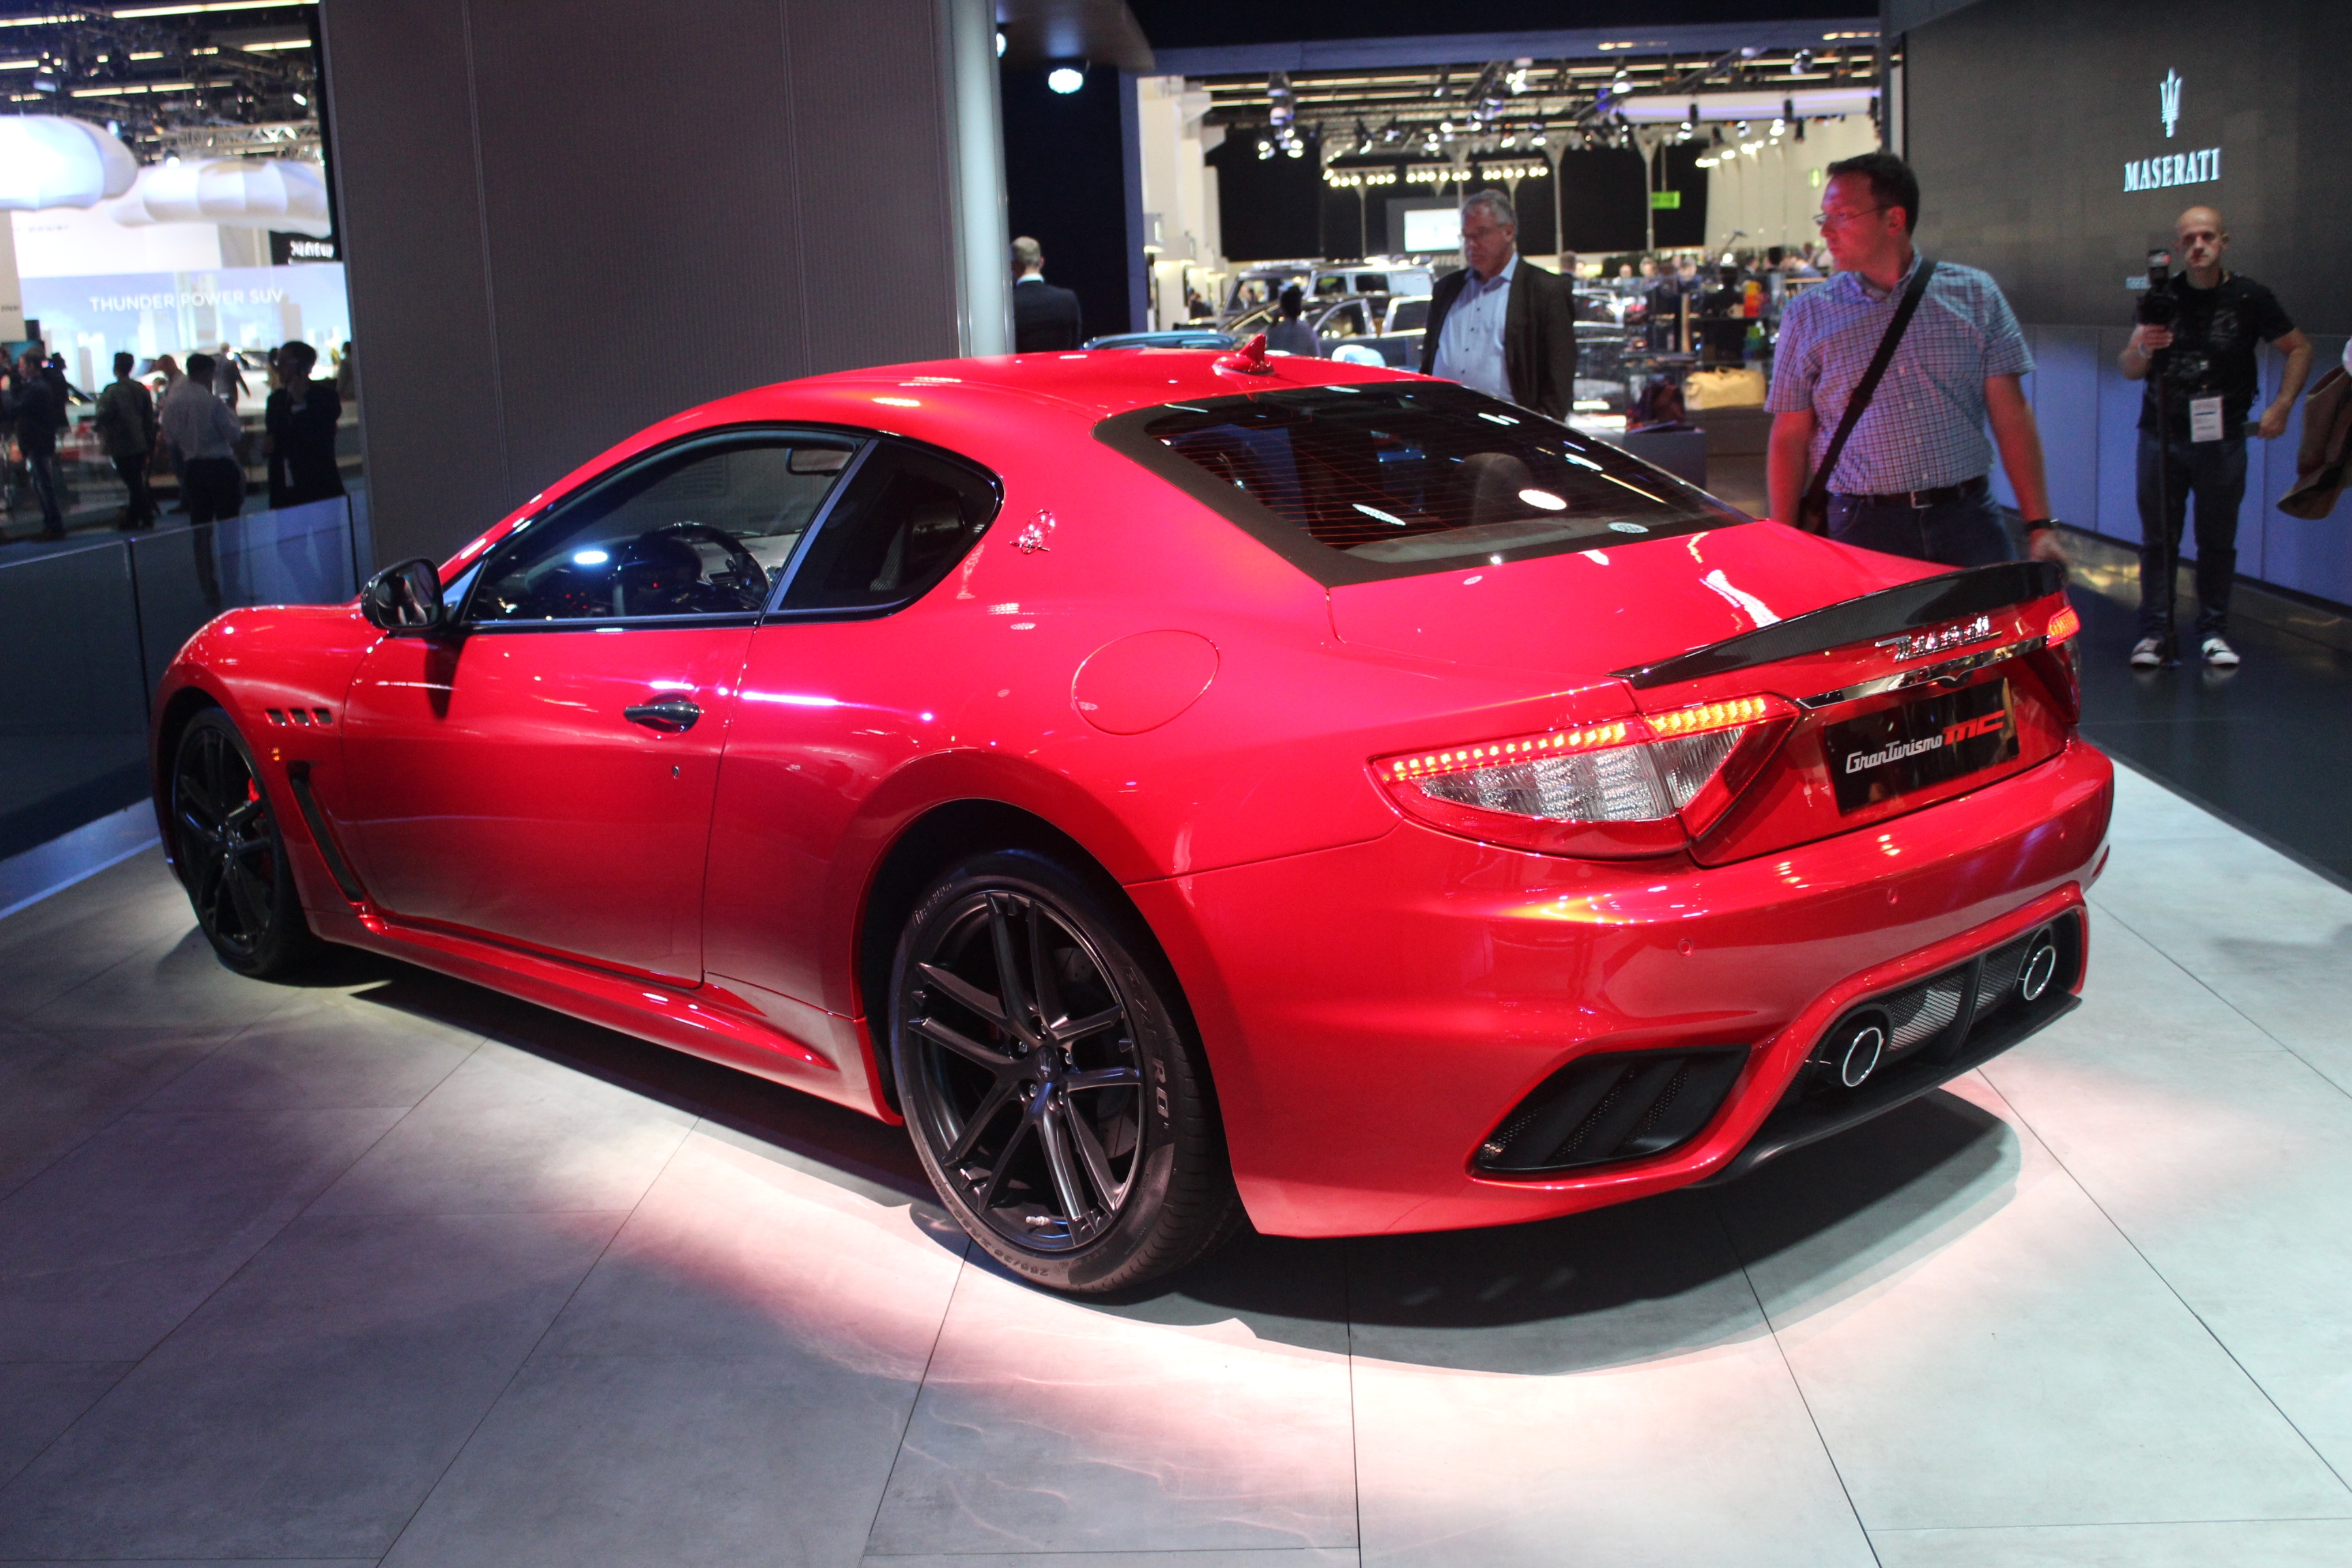 maserati granturismo restyl e vraiment en direct du salon de francfort 2017. Black Bedroom Furniture Sets. Home Design Ideas